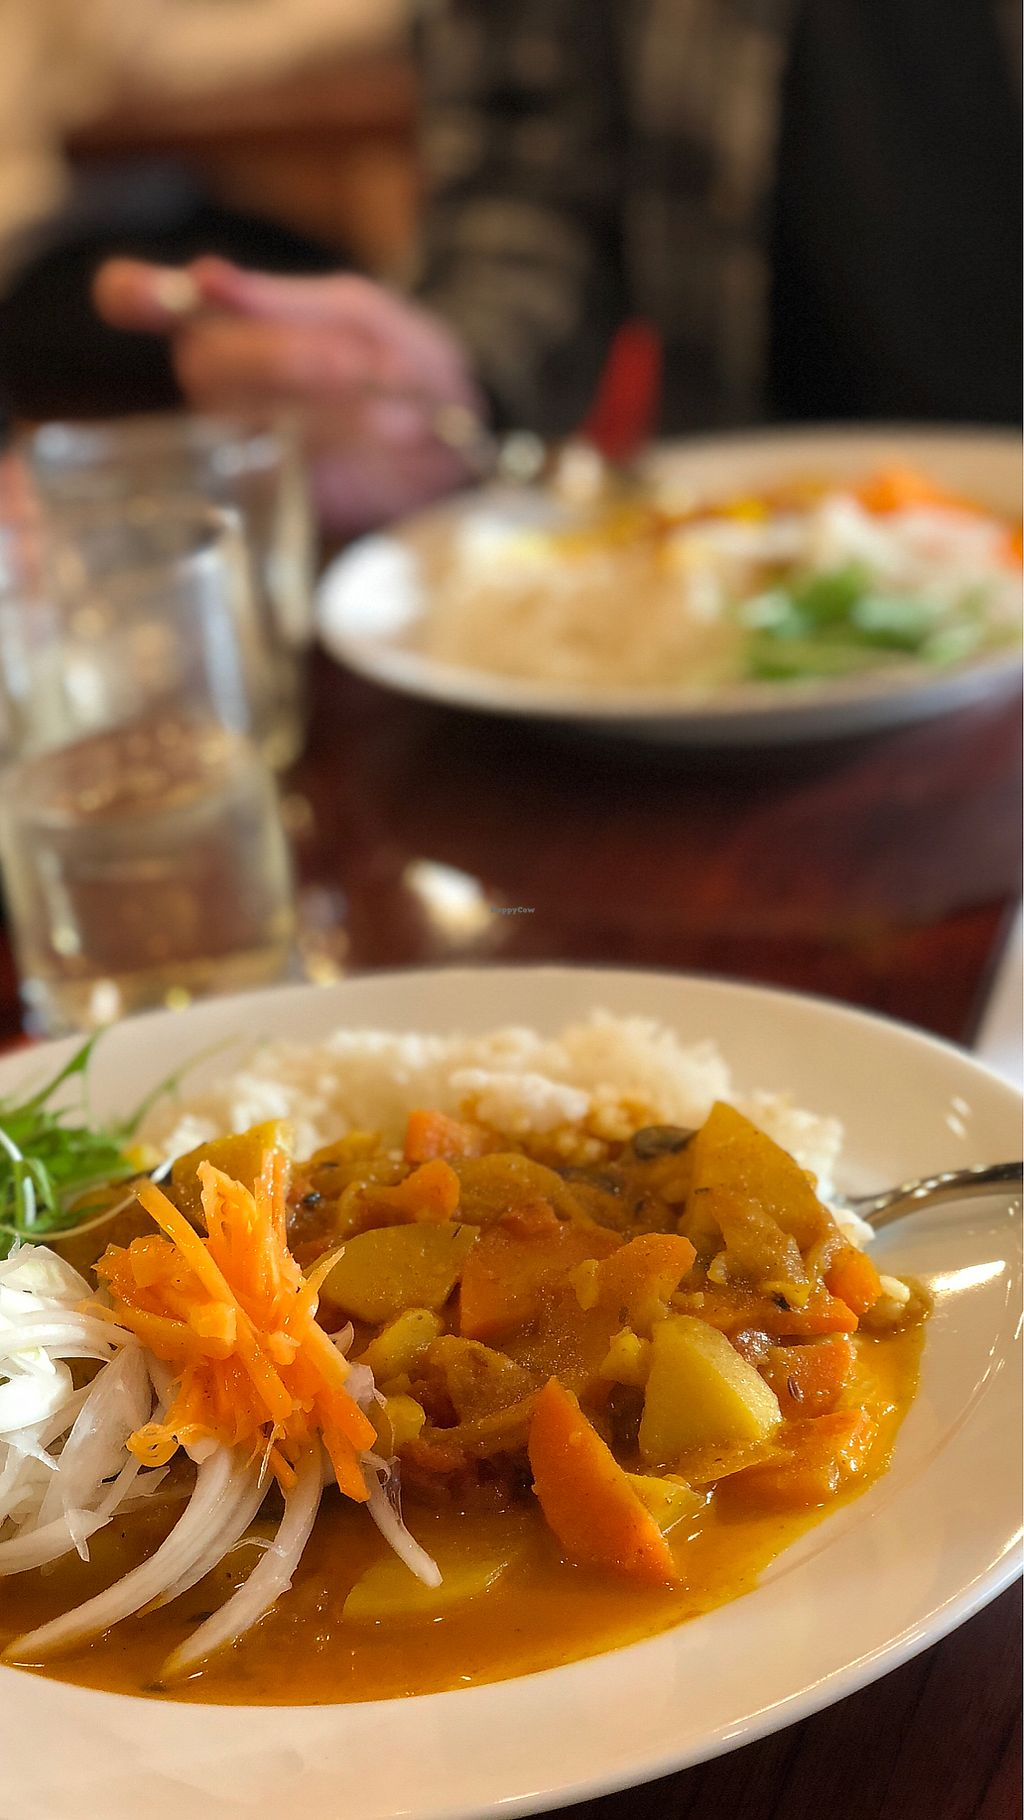 "Photo of Organic Cafe Soil  by <a href=""/members/profile/CarlyHitchcock"">CarlyHitchcock</a> <br/>Vegetable curry  <br/> January 9, 2018  - <a href='/contact/abuse/image/108962/344658'>Report</a>"